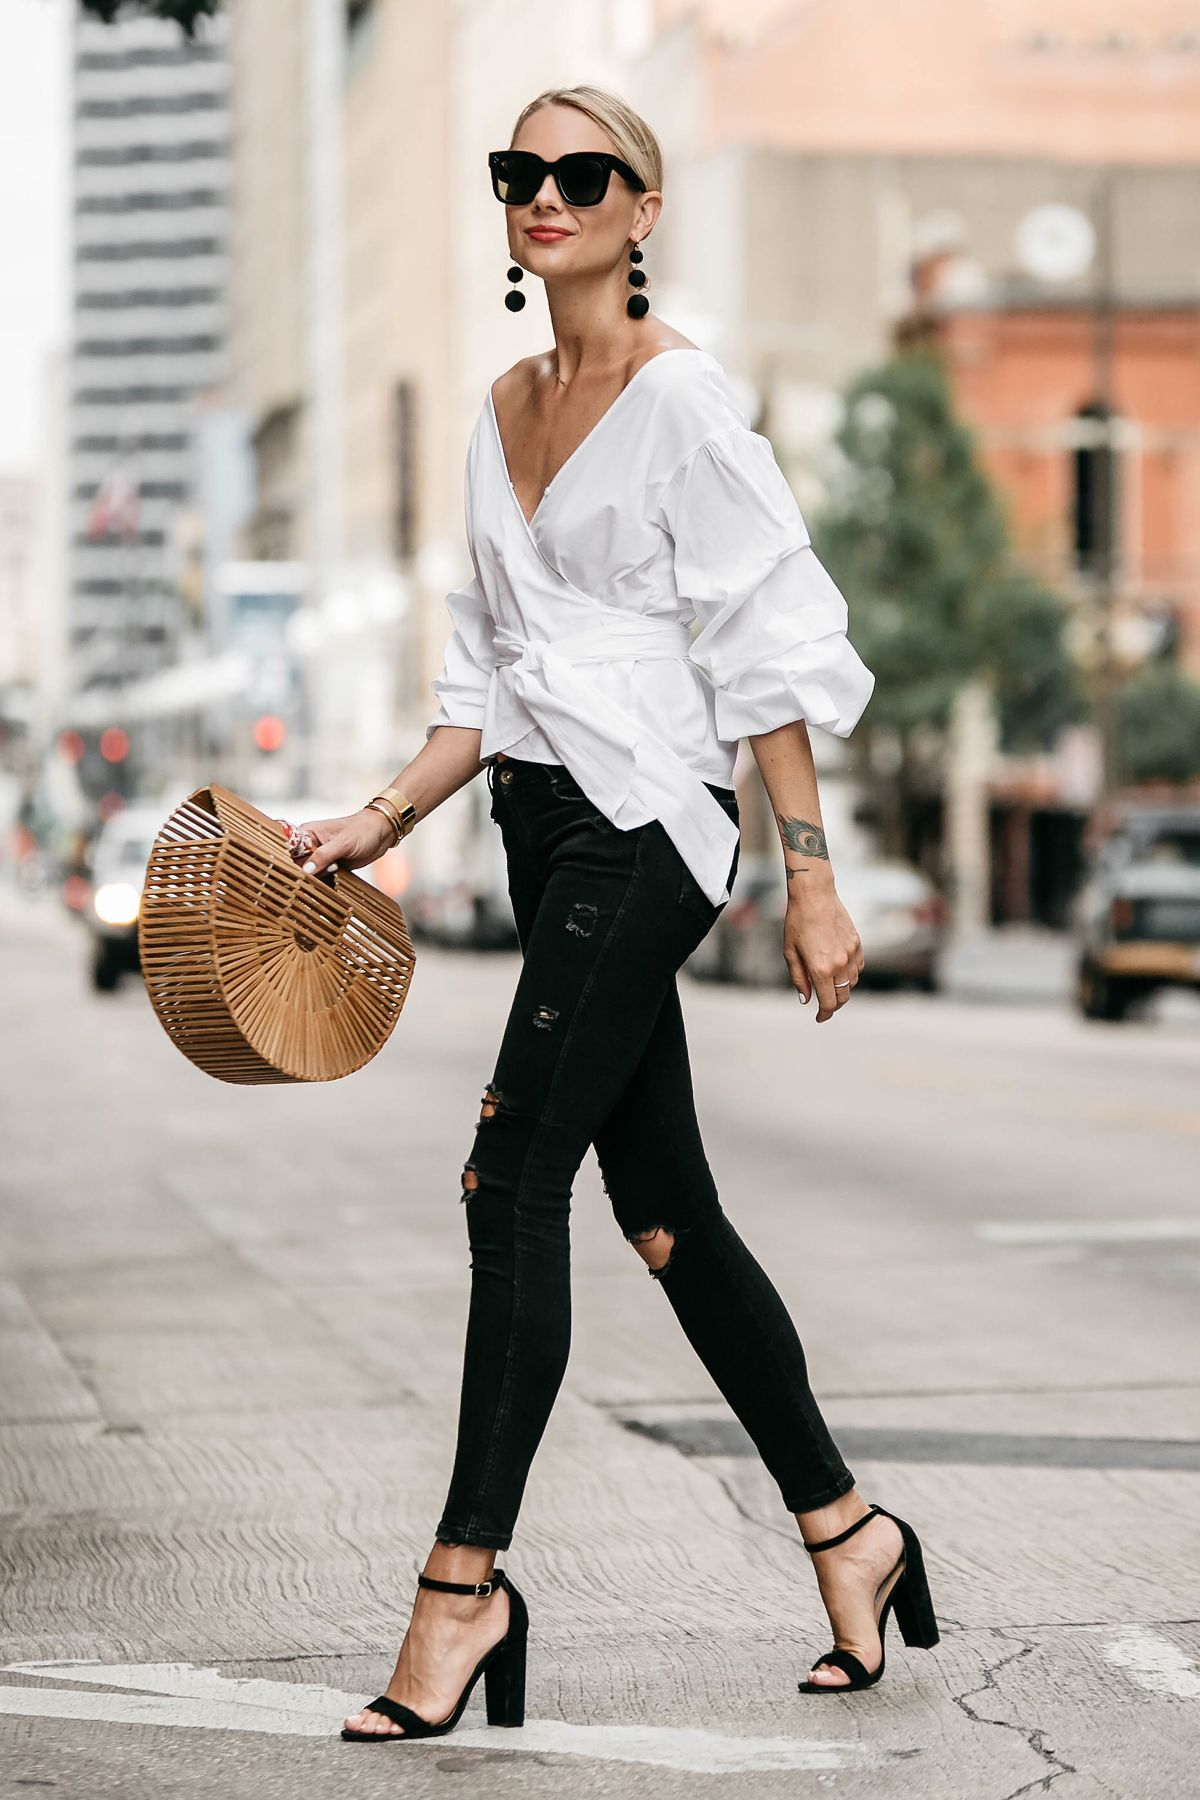 f8c0dc5c32e1 How to Pick the Perfect Jeans for your Style  Black Skinny Jeans have a  wardrobe staple for over a decade. New details give a modern twist to  classic denim.